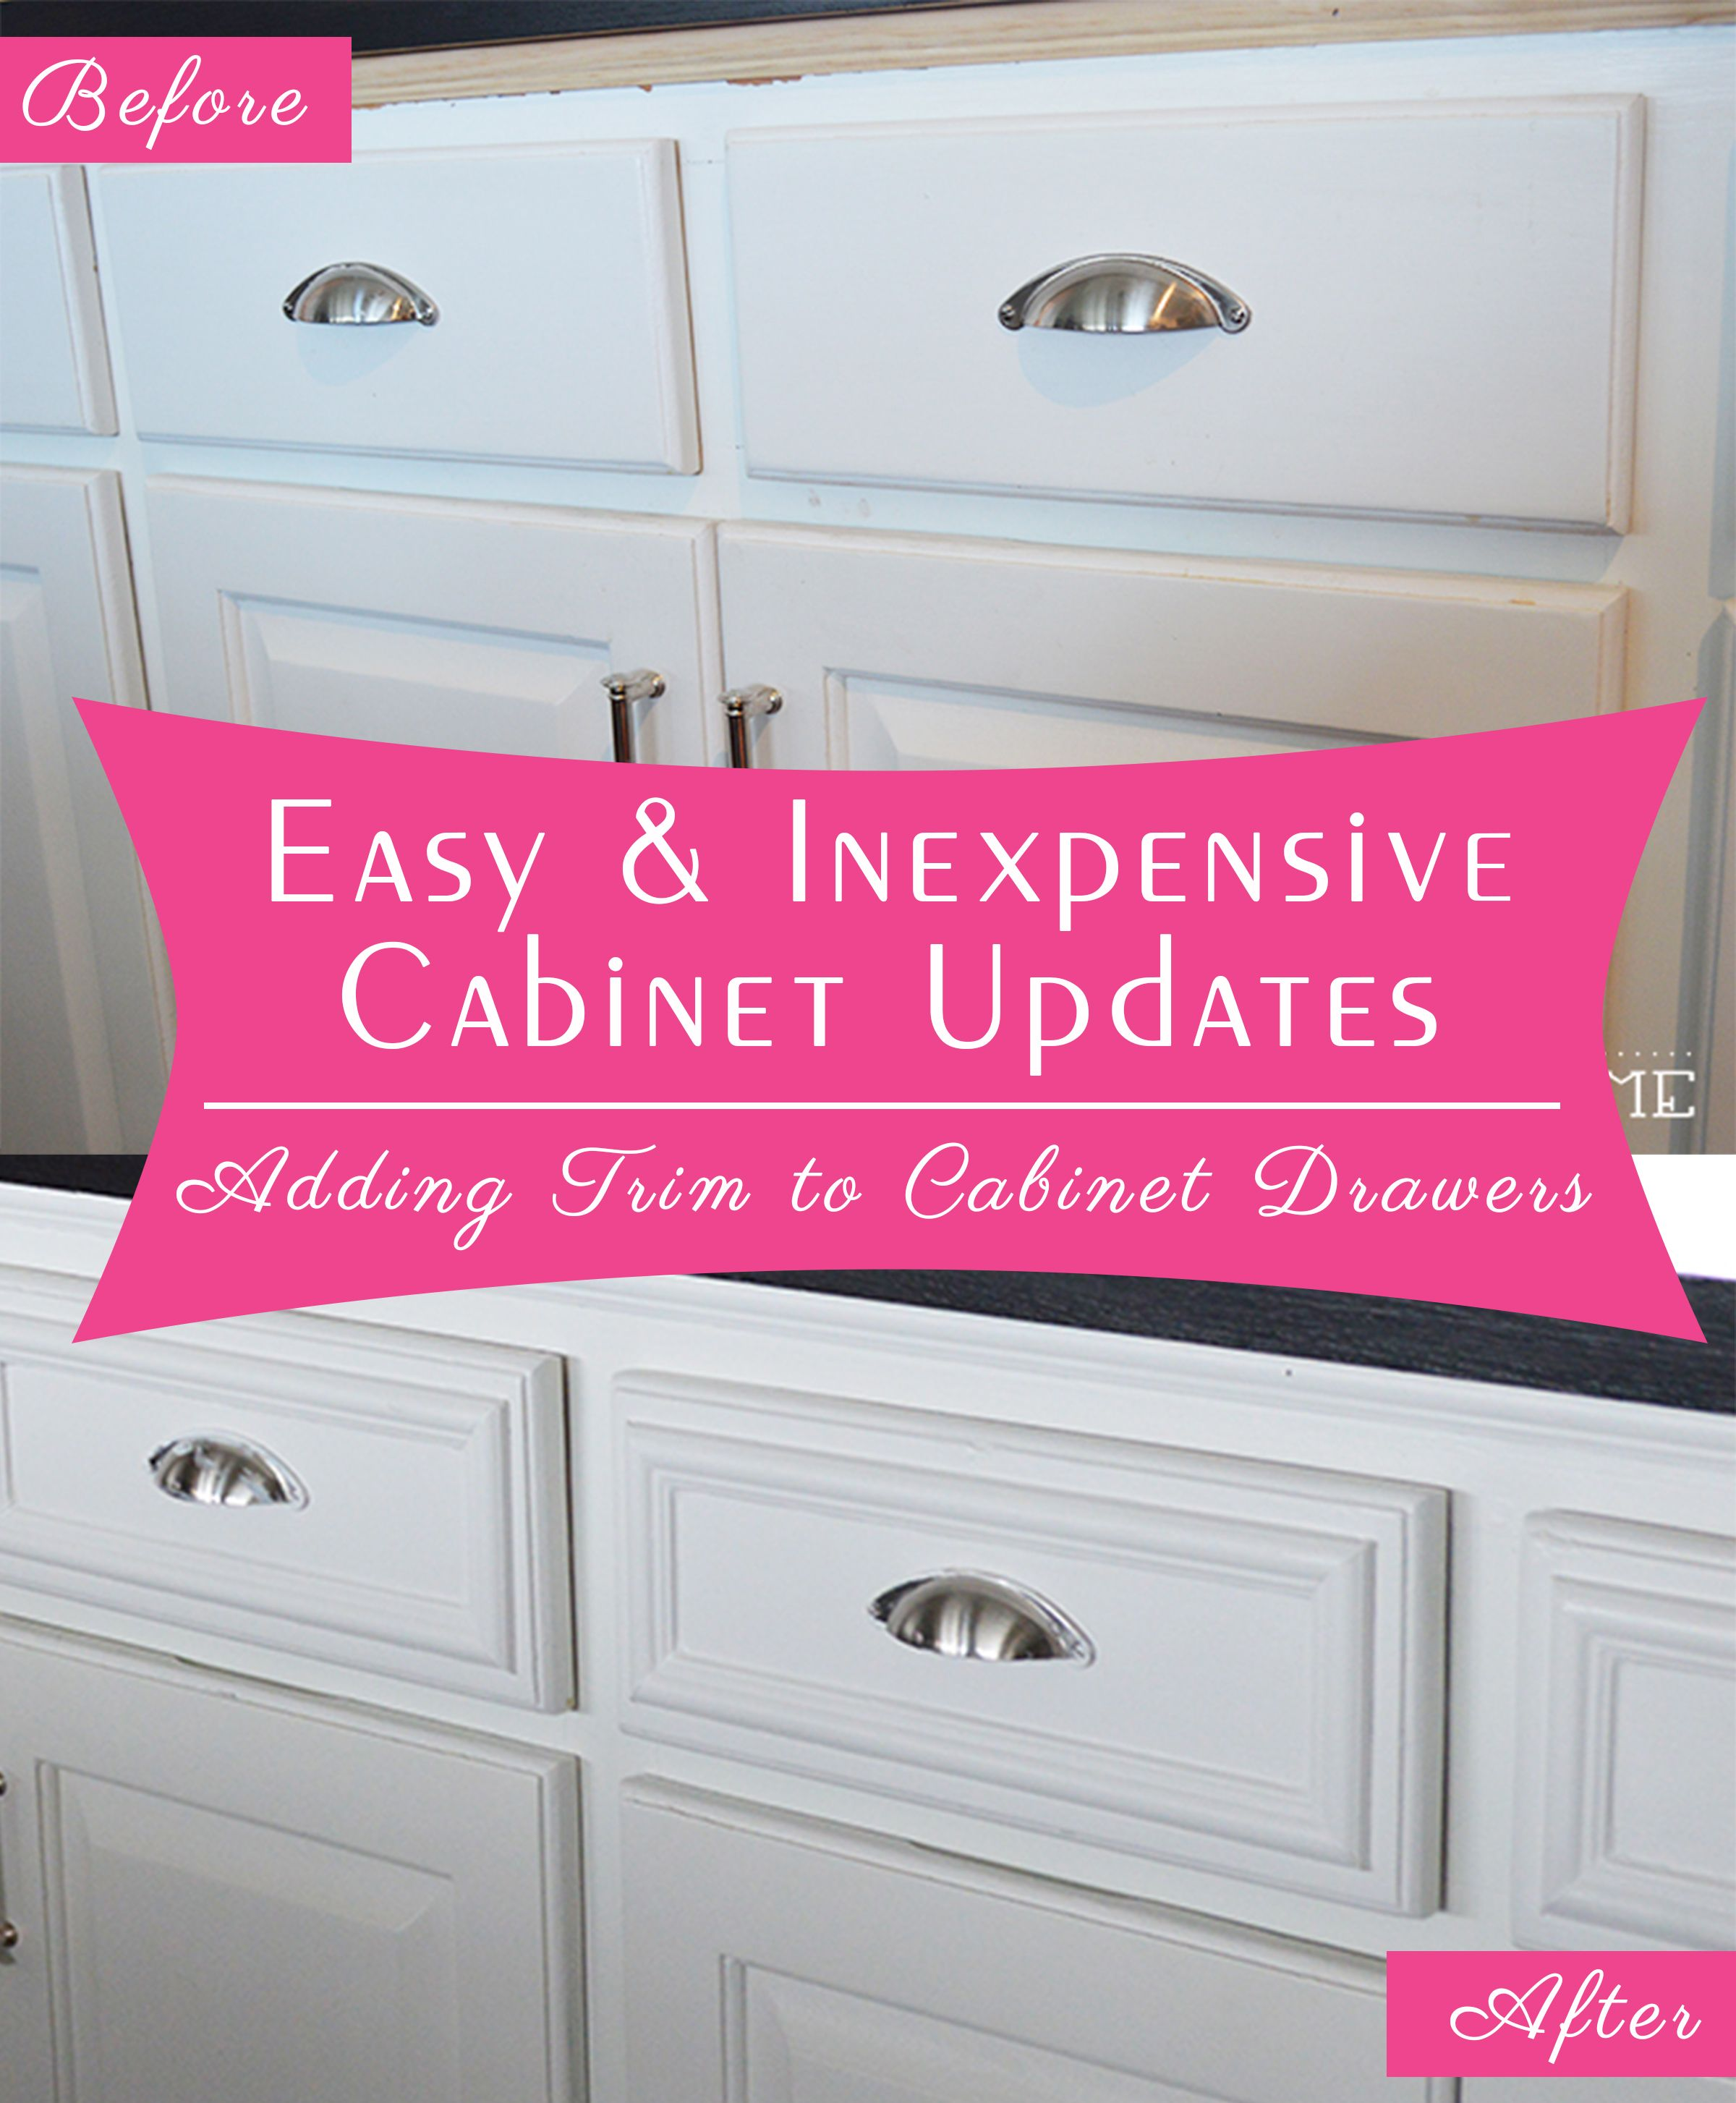 Easy (and Inexpensive) Cabinet Updates: Adding Trim To